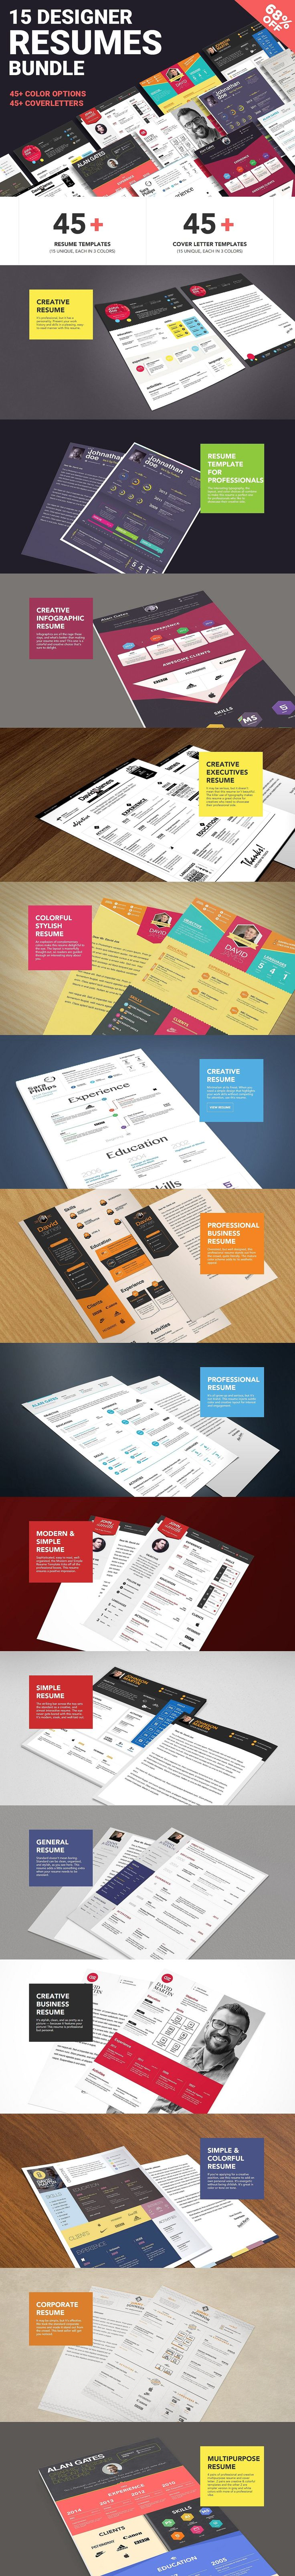 7 Best Trifold Images On Pinterest